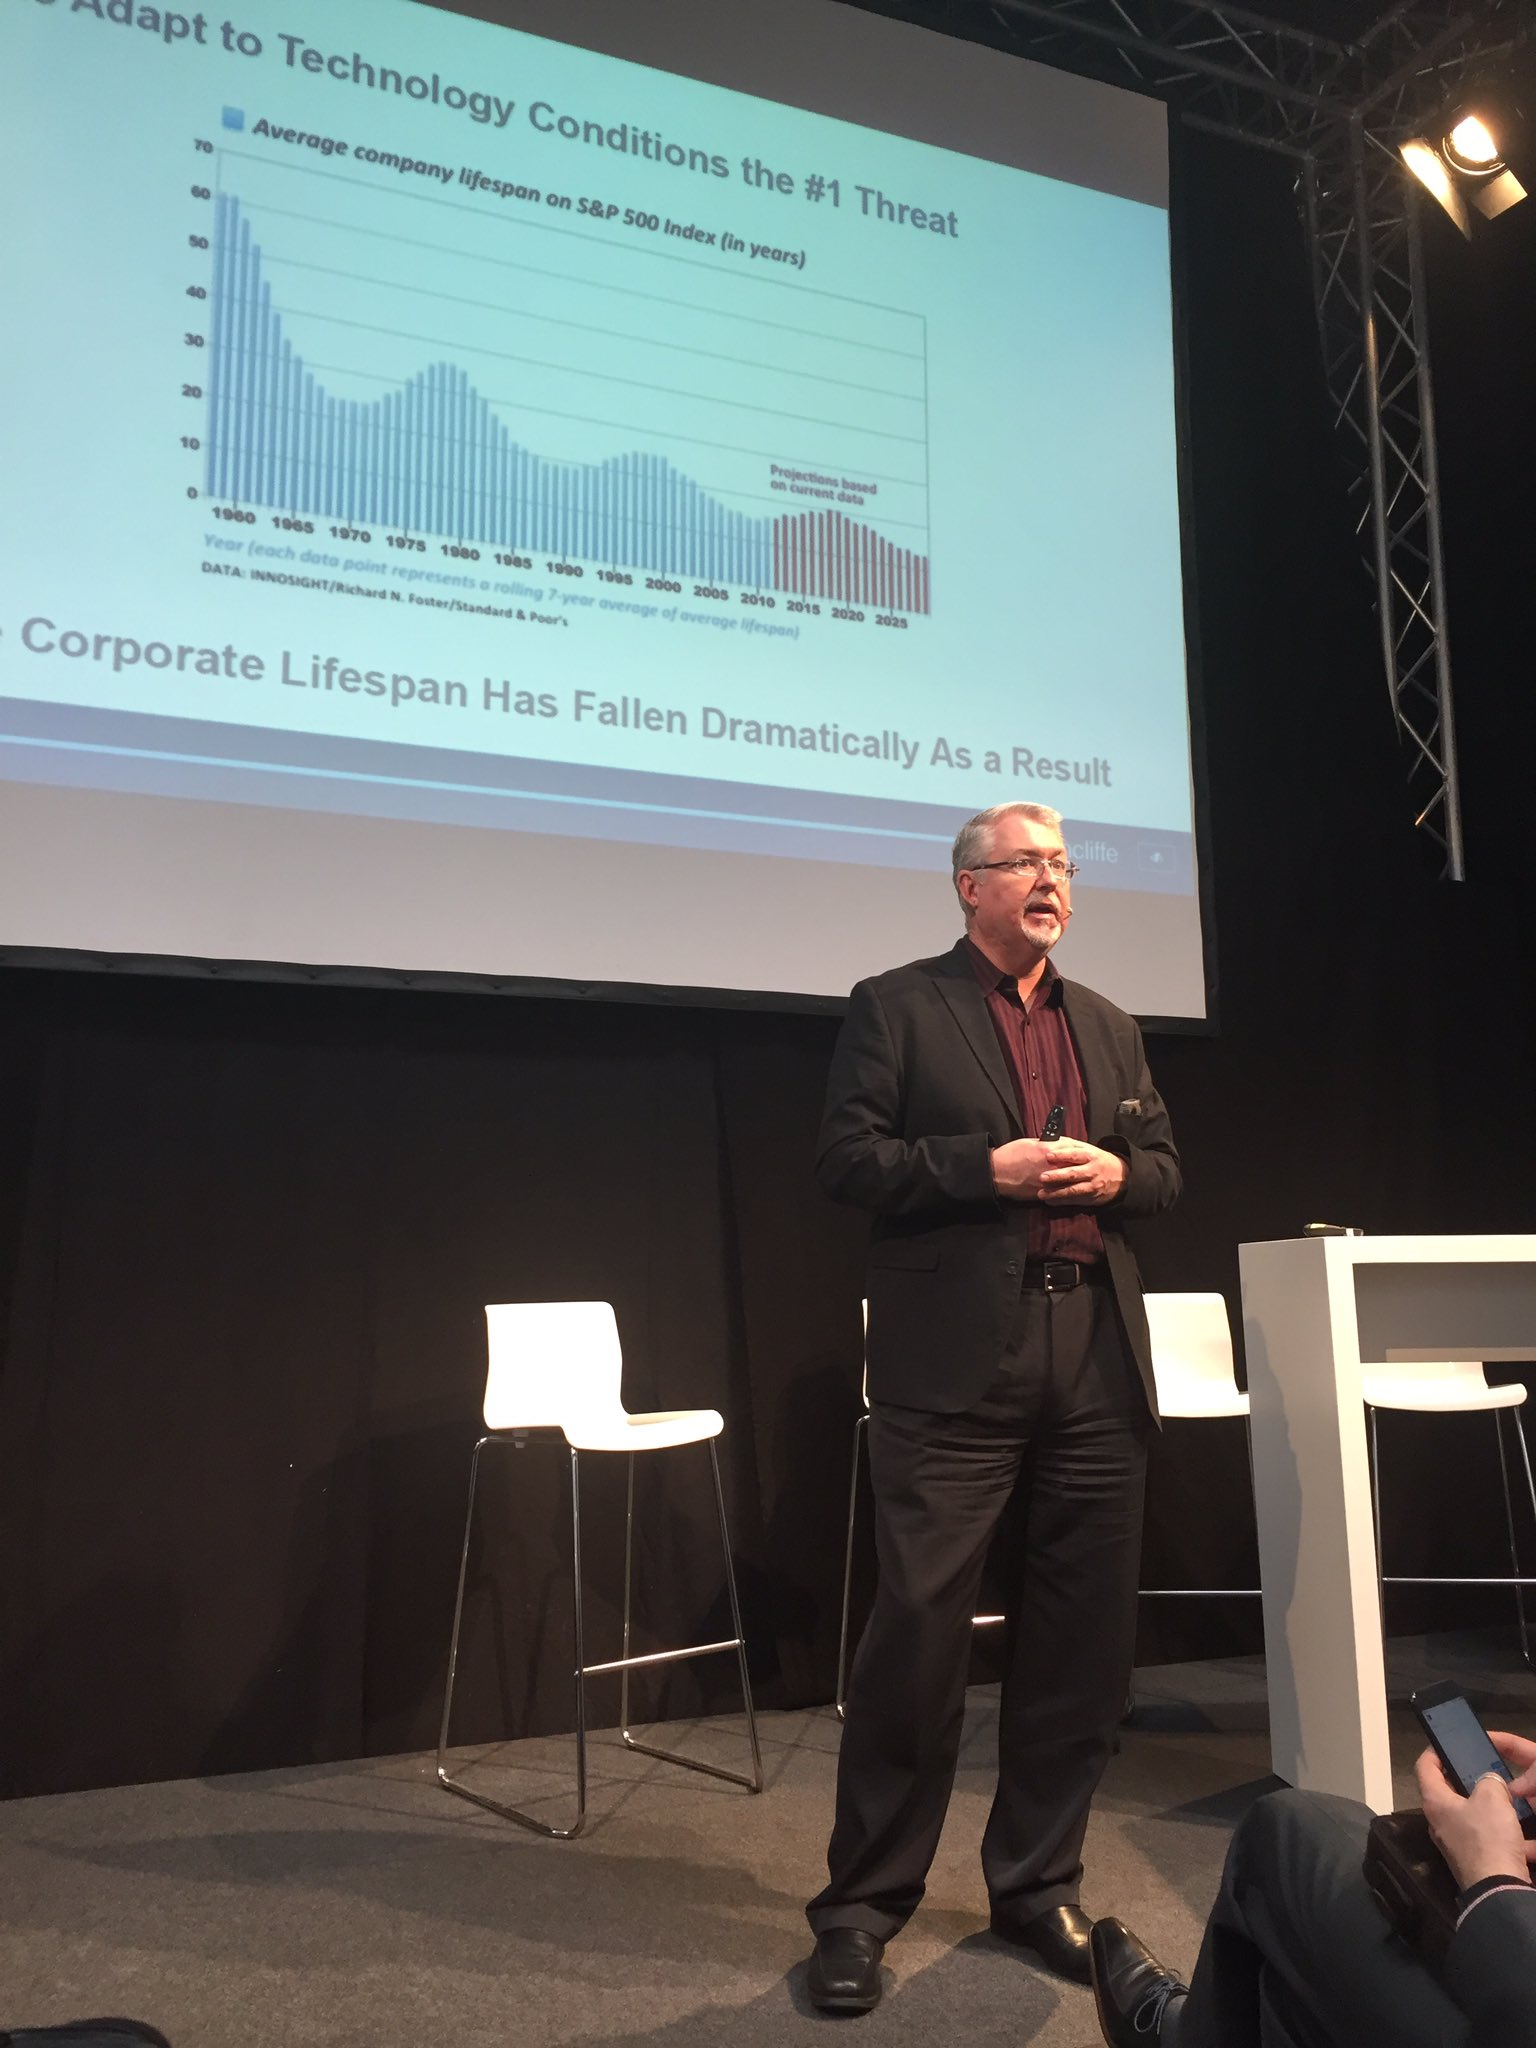 Now on stage @dhinchcliffe on the next generation digital enterprise #cebiteda https://t.co/7TUysIw9aK